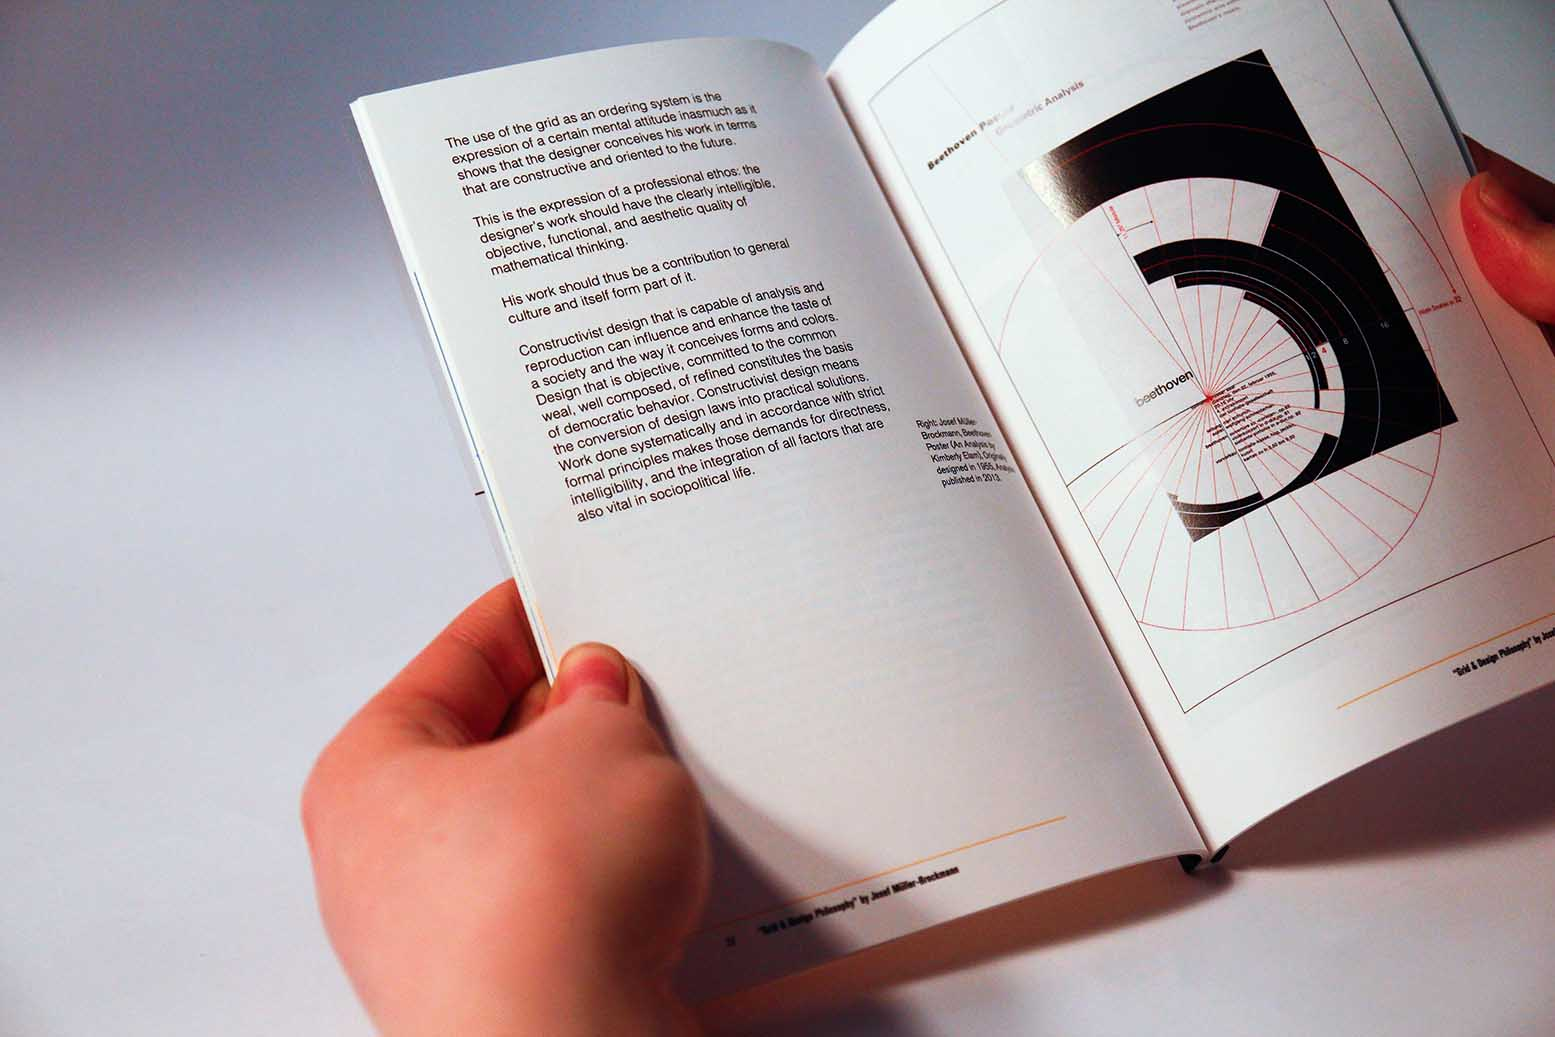 Image of one of the spreads, side view